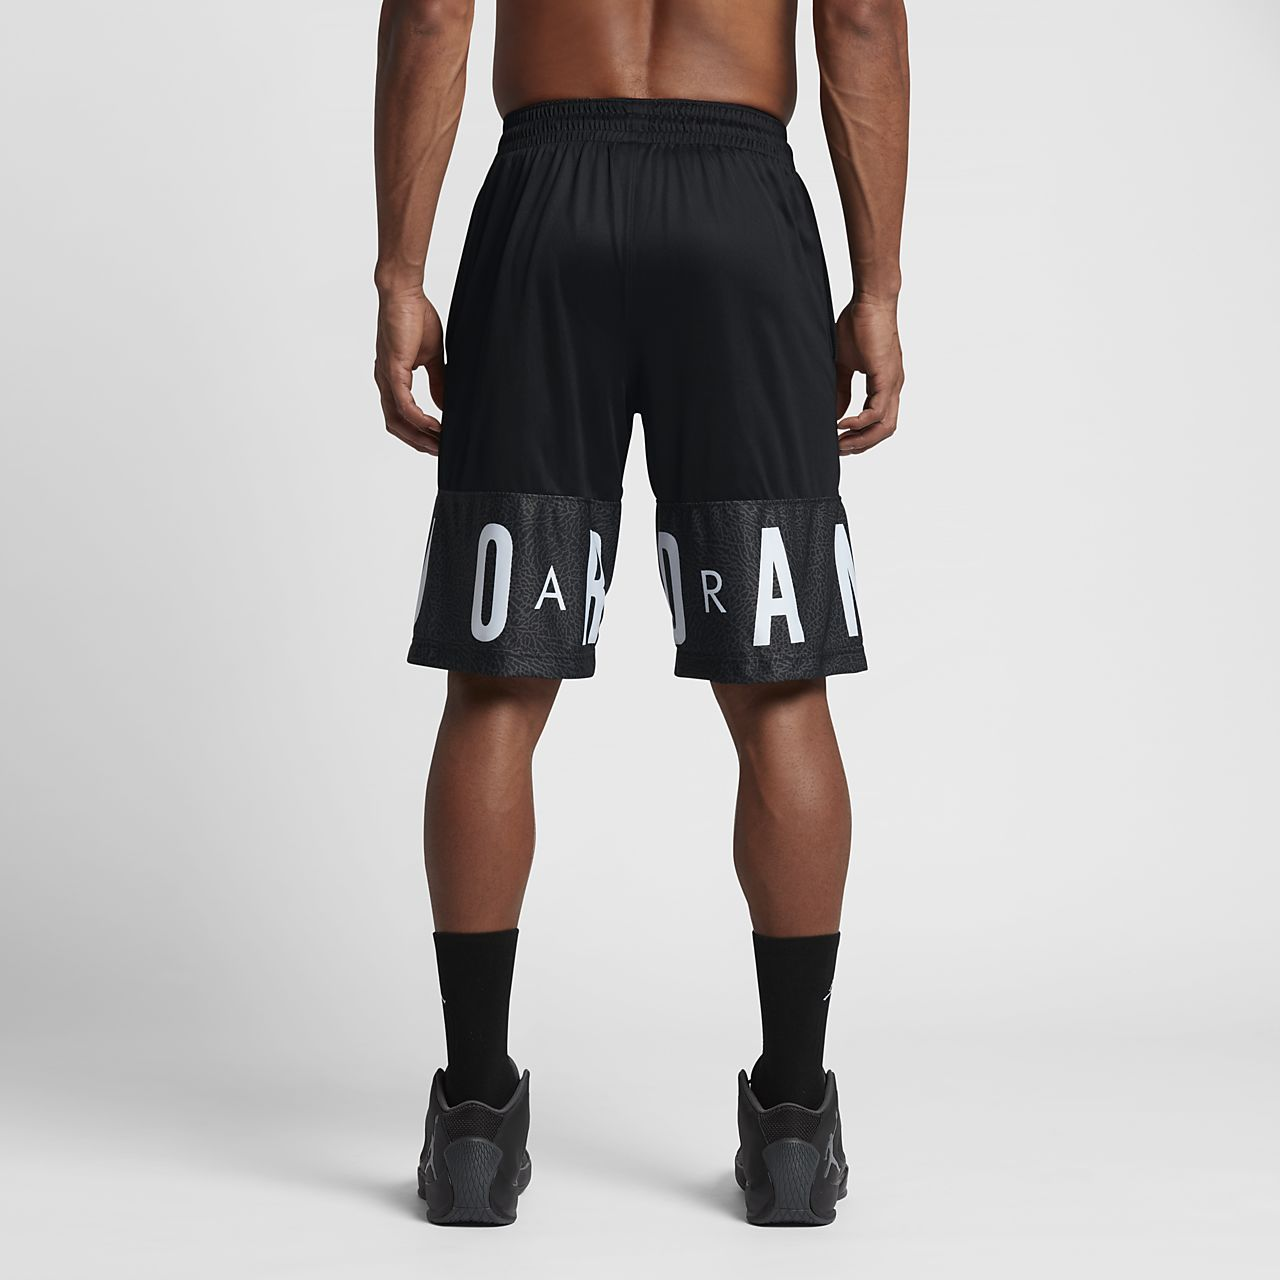 ba61fad0b31475 Air Jordan Blockout Men s Basketball Shorts. Nike.com MY